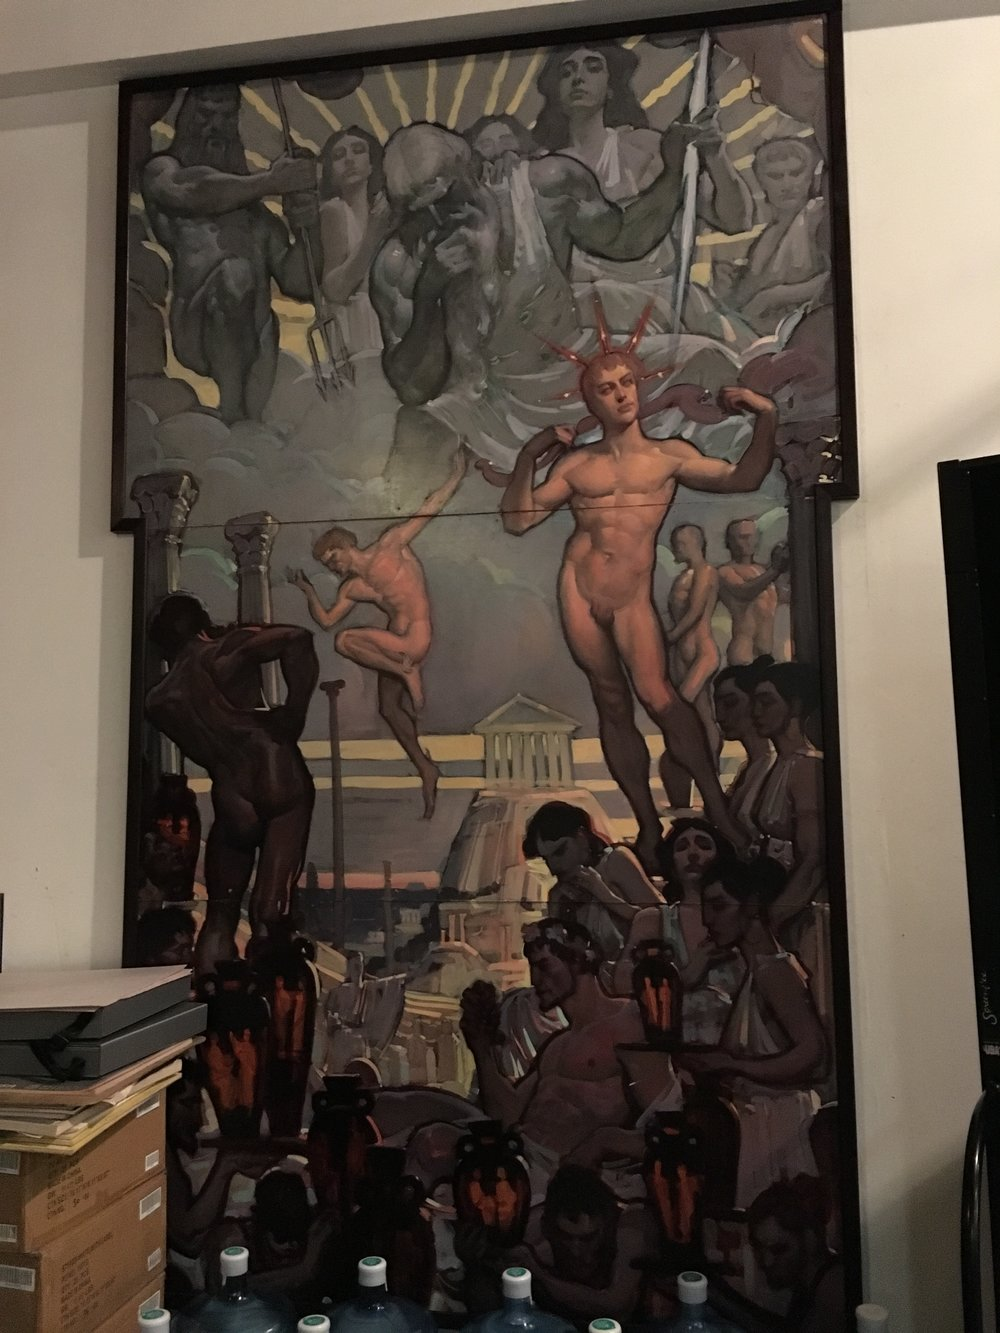 One part of the murals John Watkiss made for Associates in Art